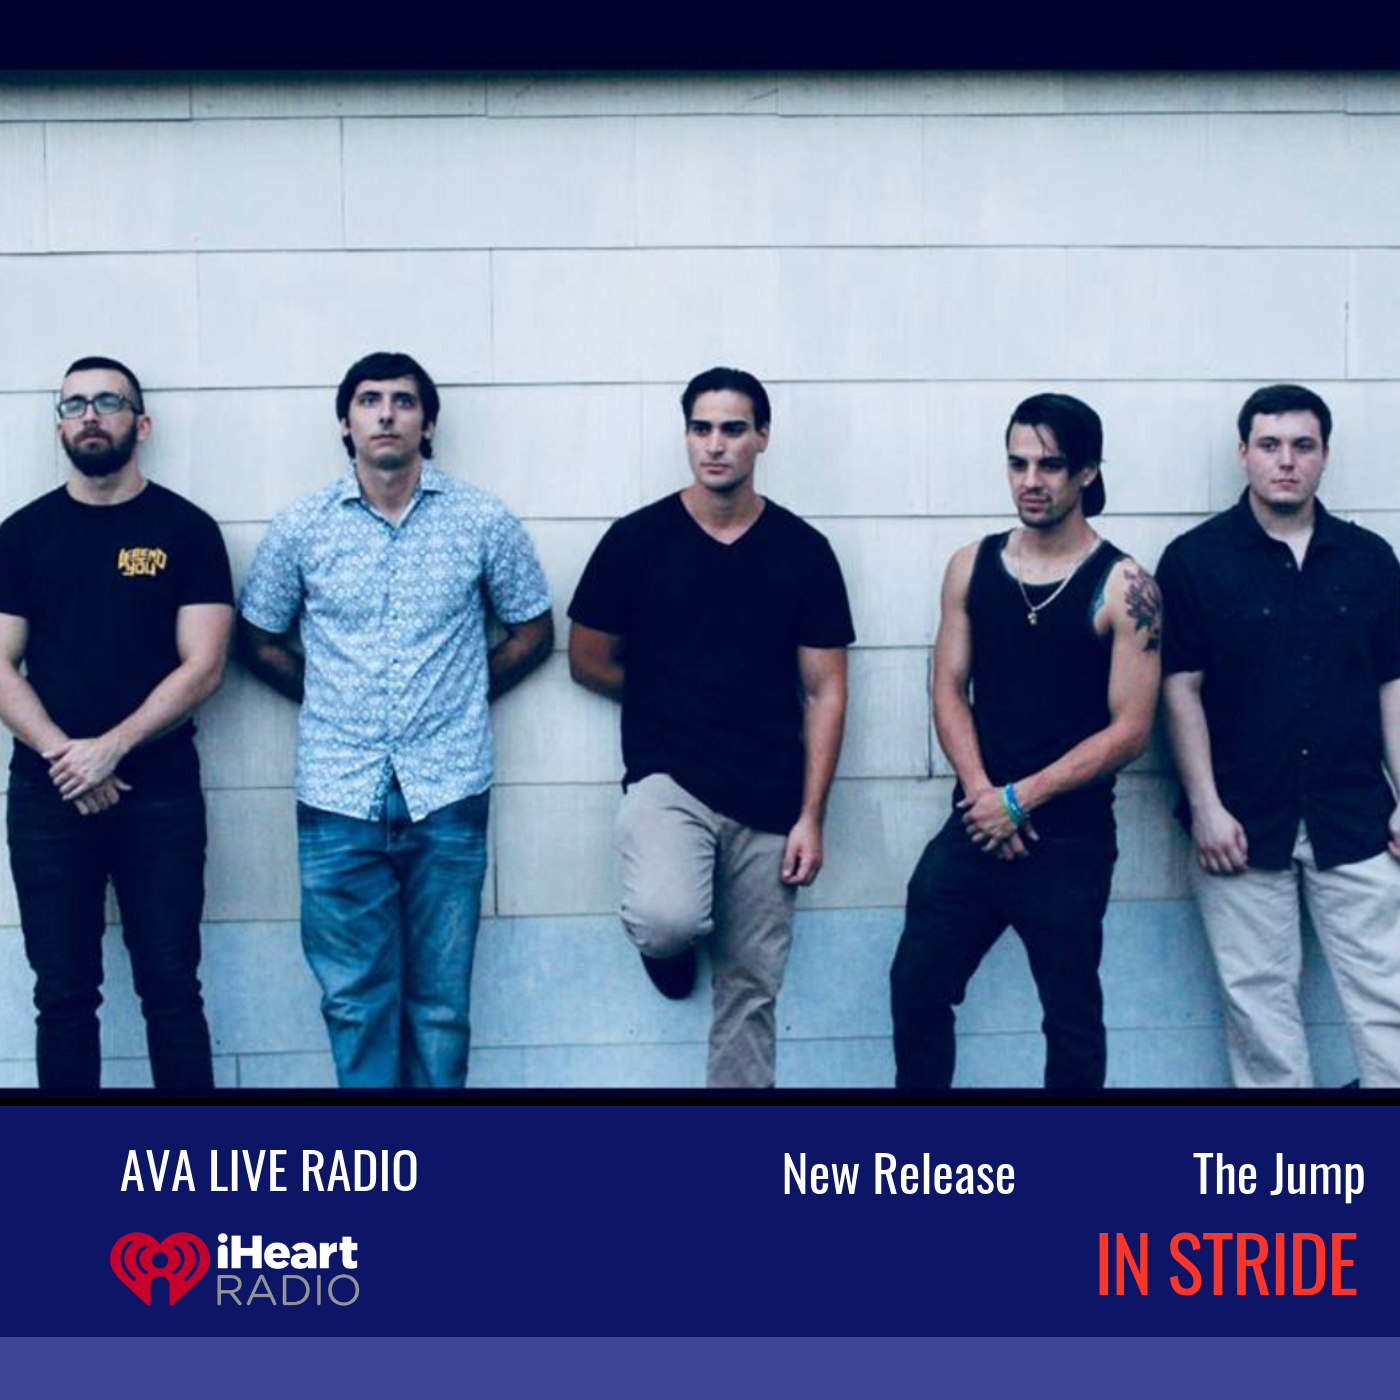 In stride avaliveradio the jump.png